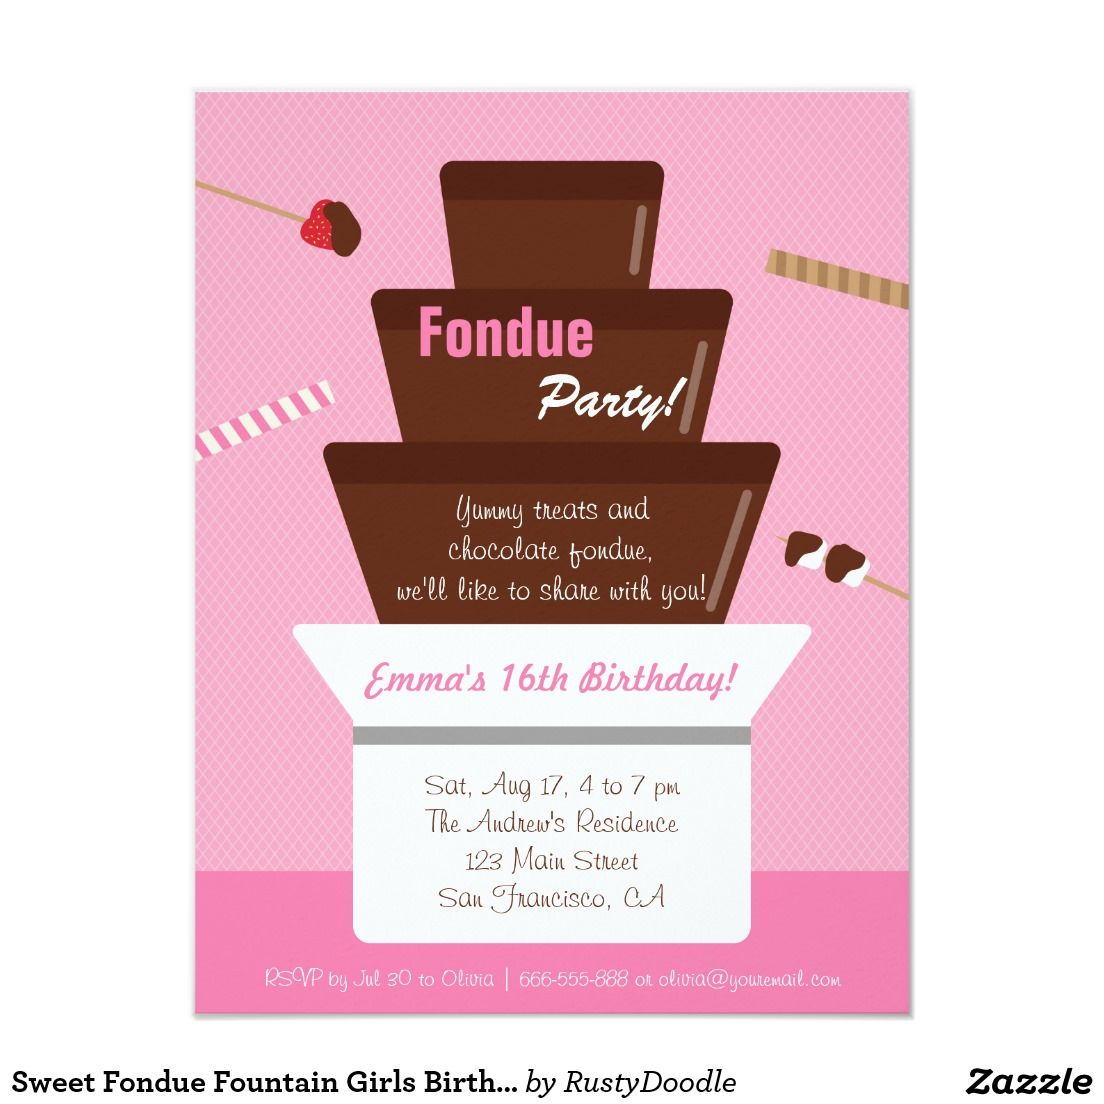 Sweet Fondue Fountain Girls Birthday Party Card | Fondue fountain ...